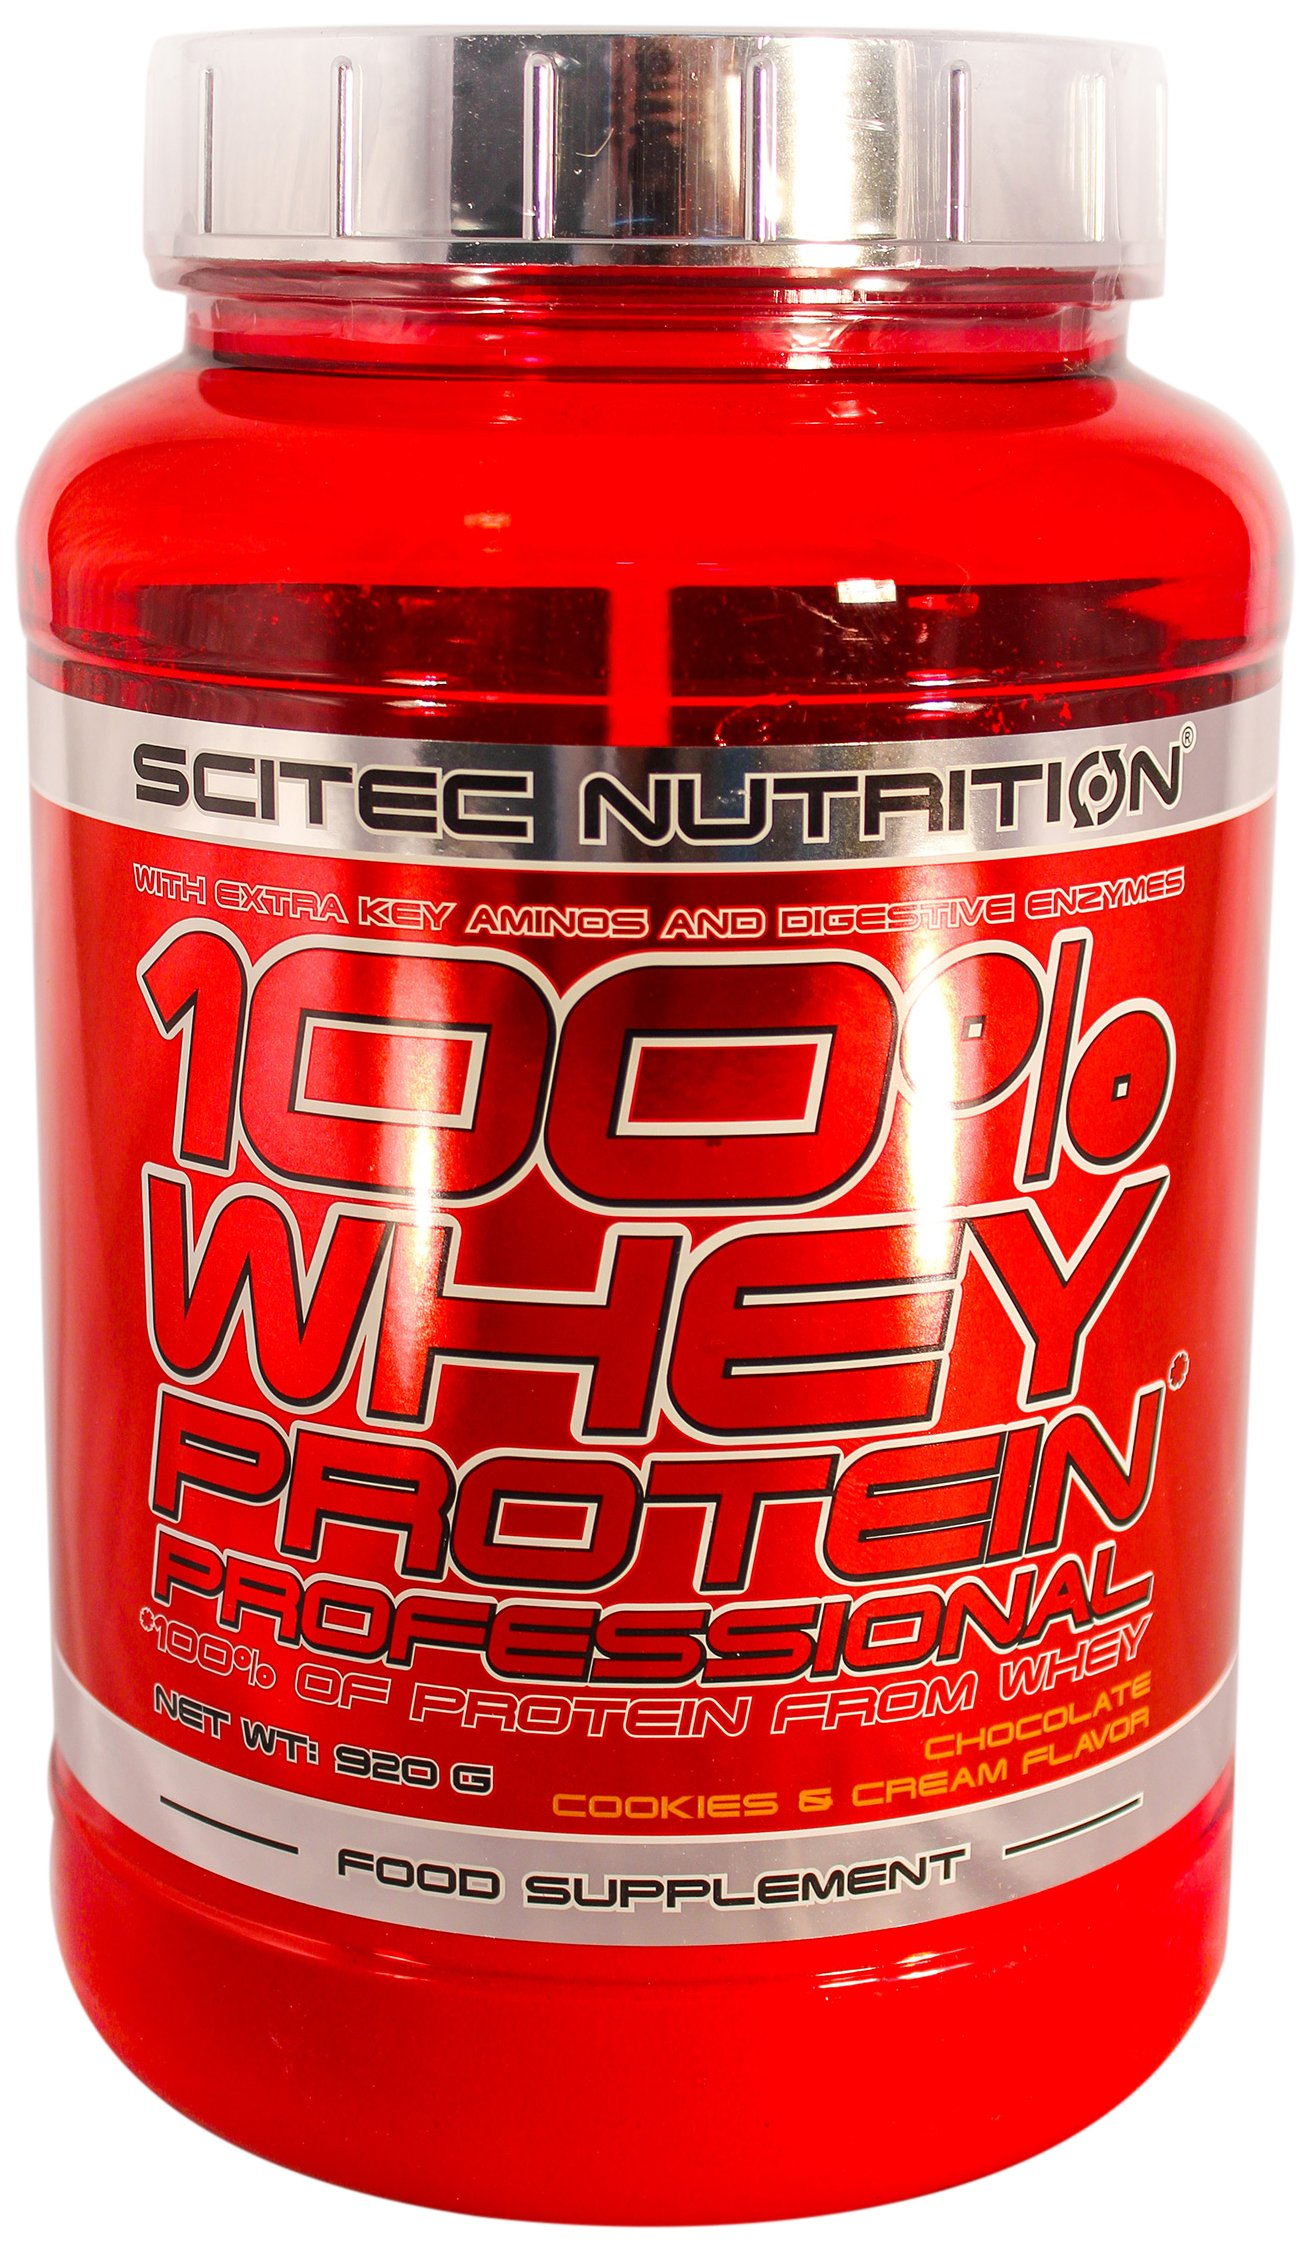 Scitec Nutrition 100% Whey Professional 920G Chocolate Cookies & Cream